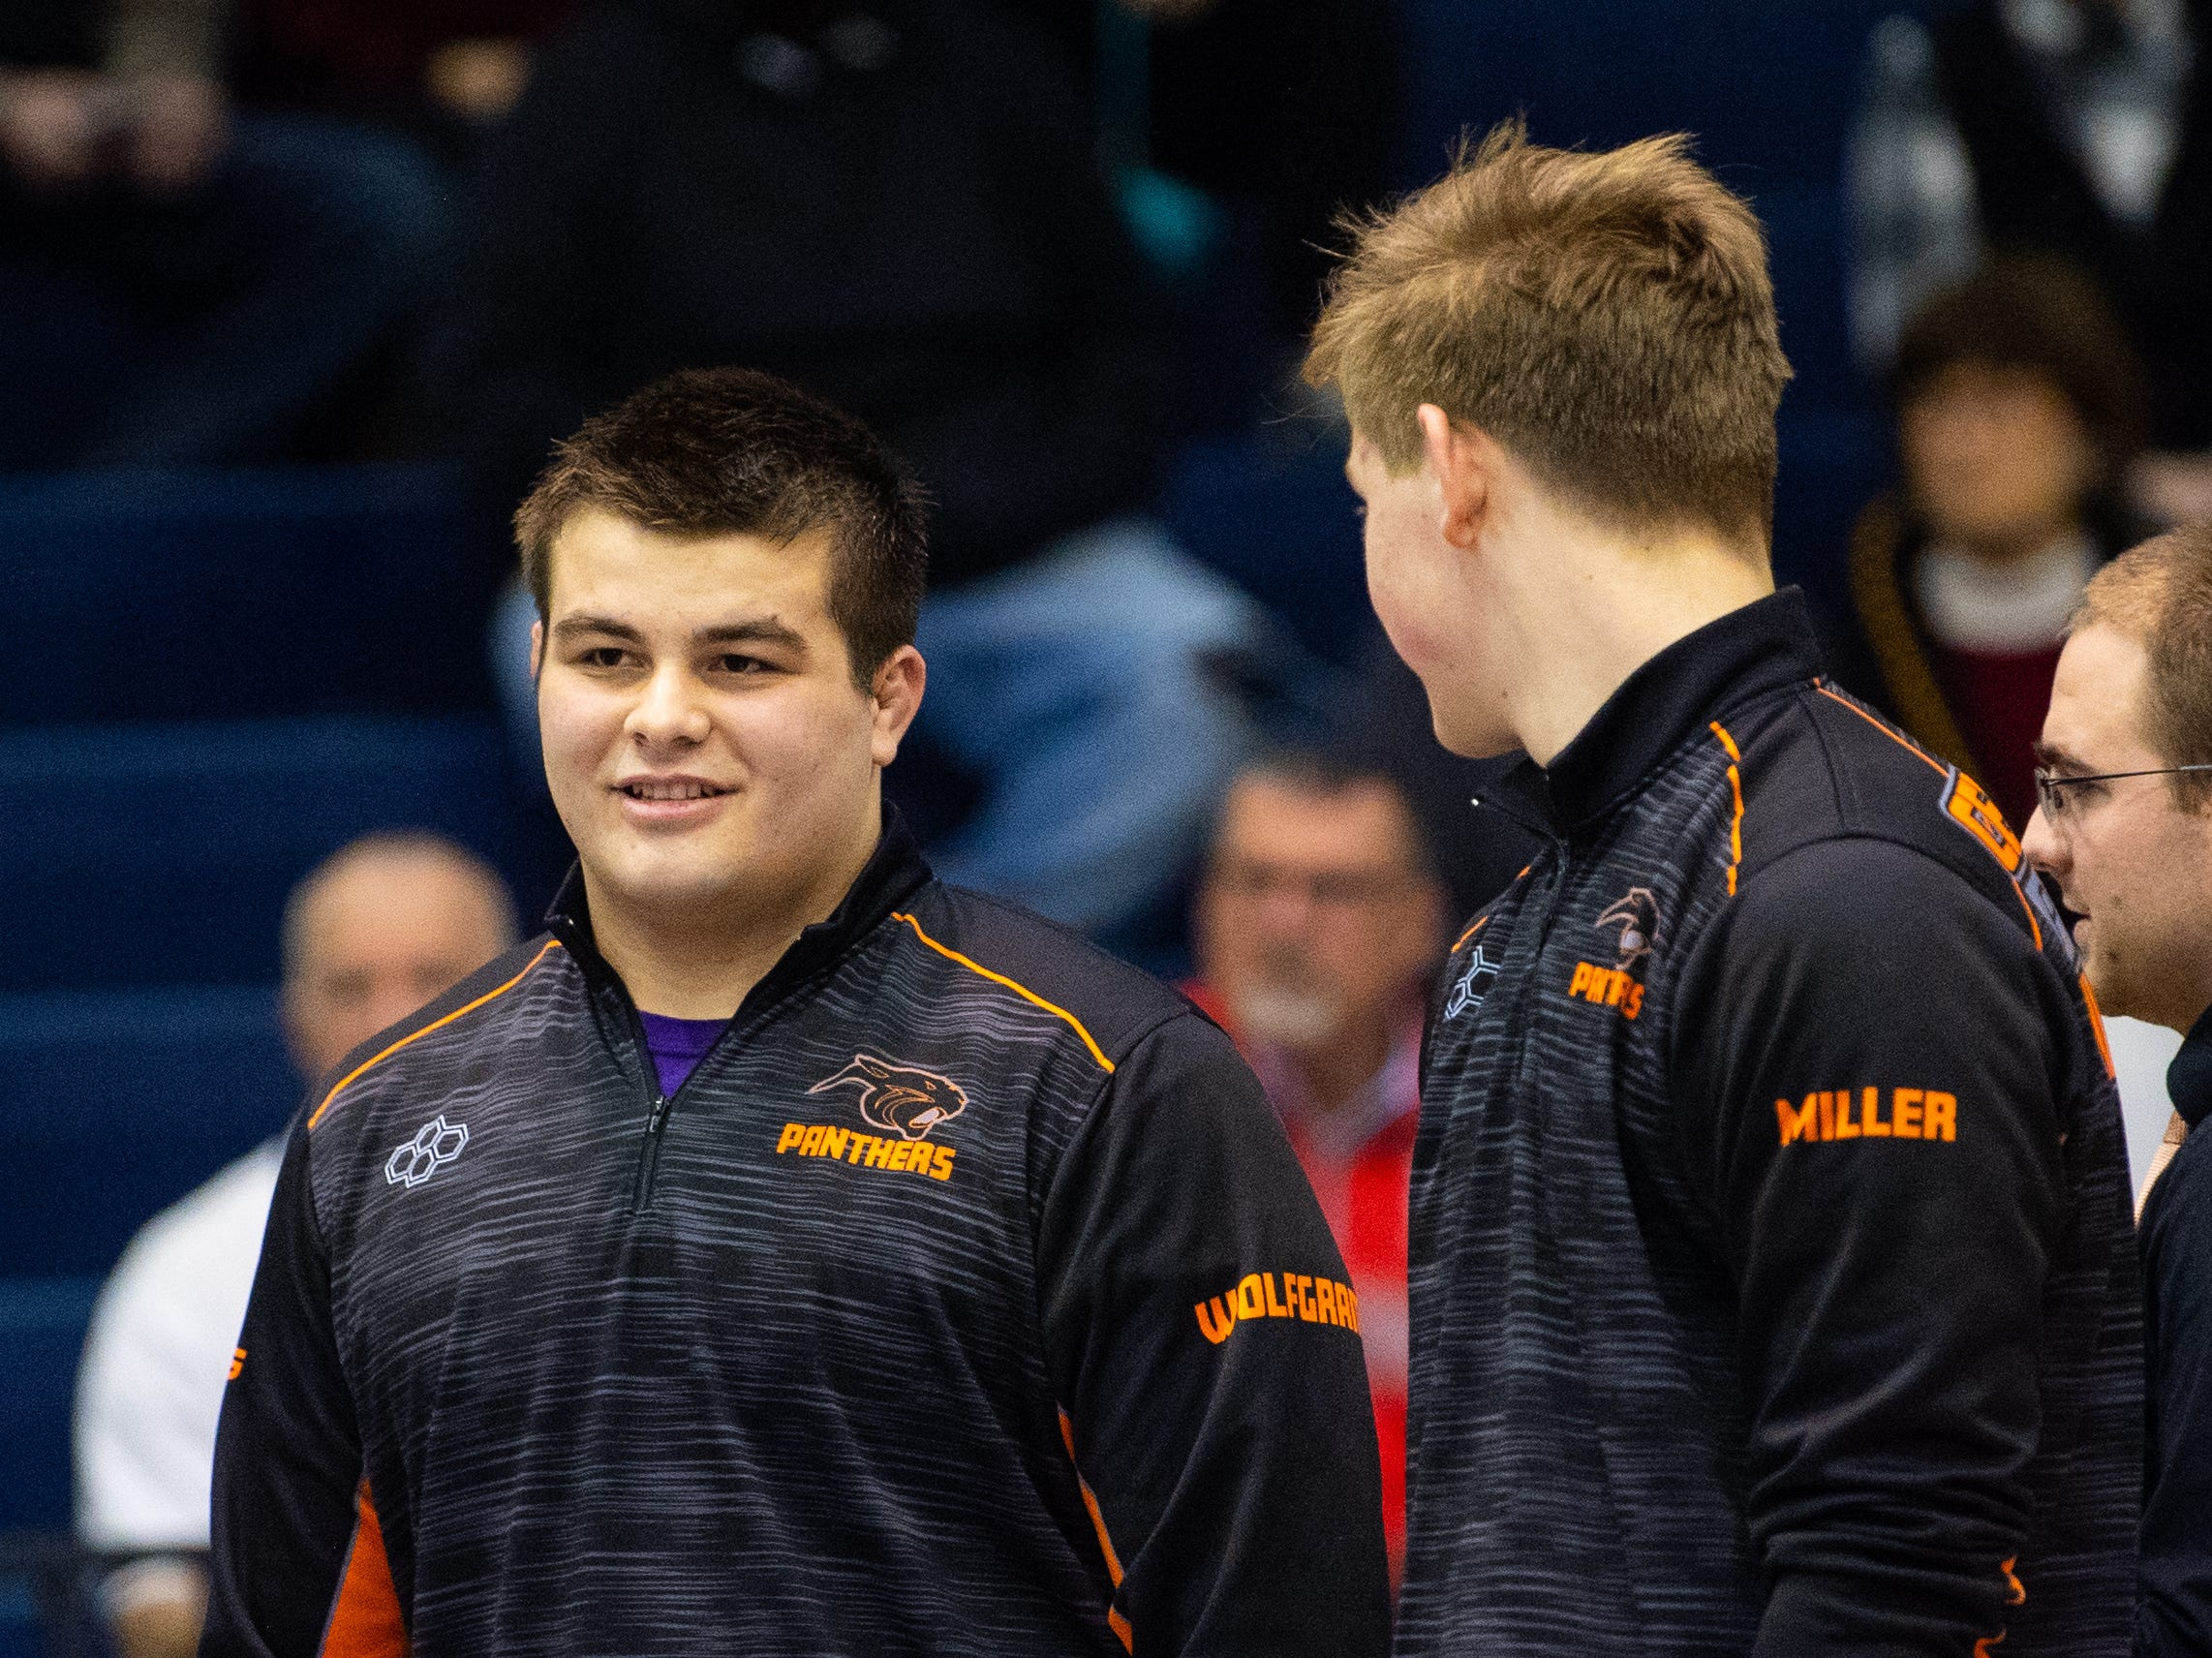 Michael Wolfgram (left) and Ethan Miller (right) of Central York discuss strategy during the wrestling dual meet between Dallastown and Central York at Dallastown Area High School, Thursday, January 3, 2019. The Wildcats defeated the Panthers 62-18.